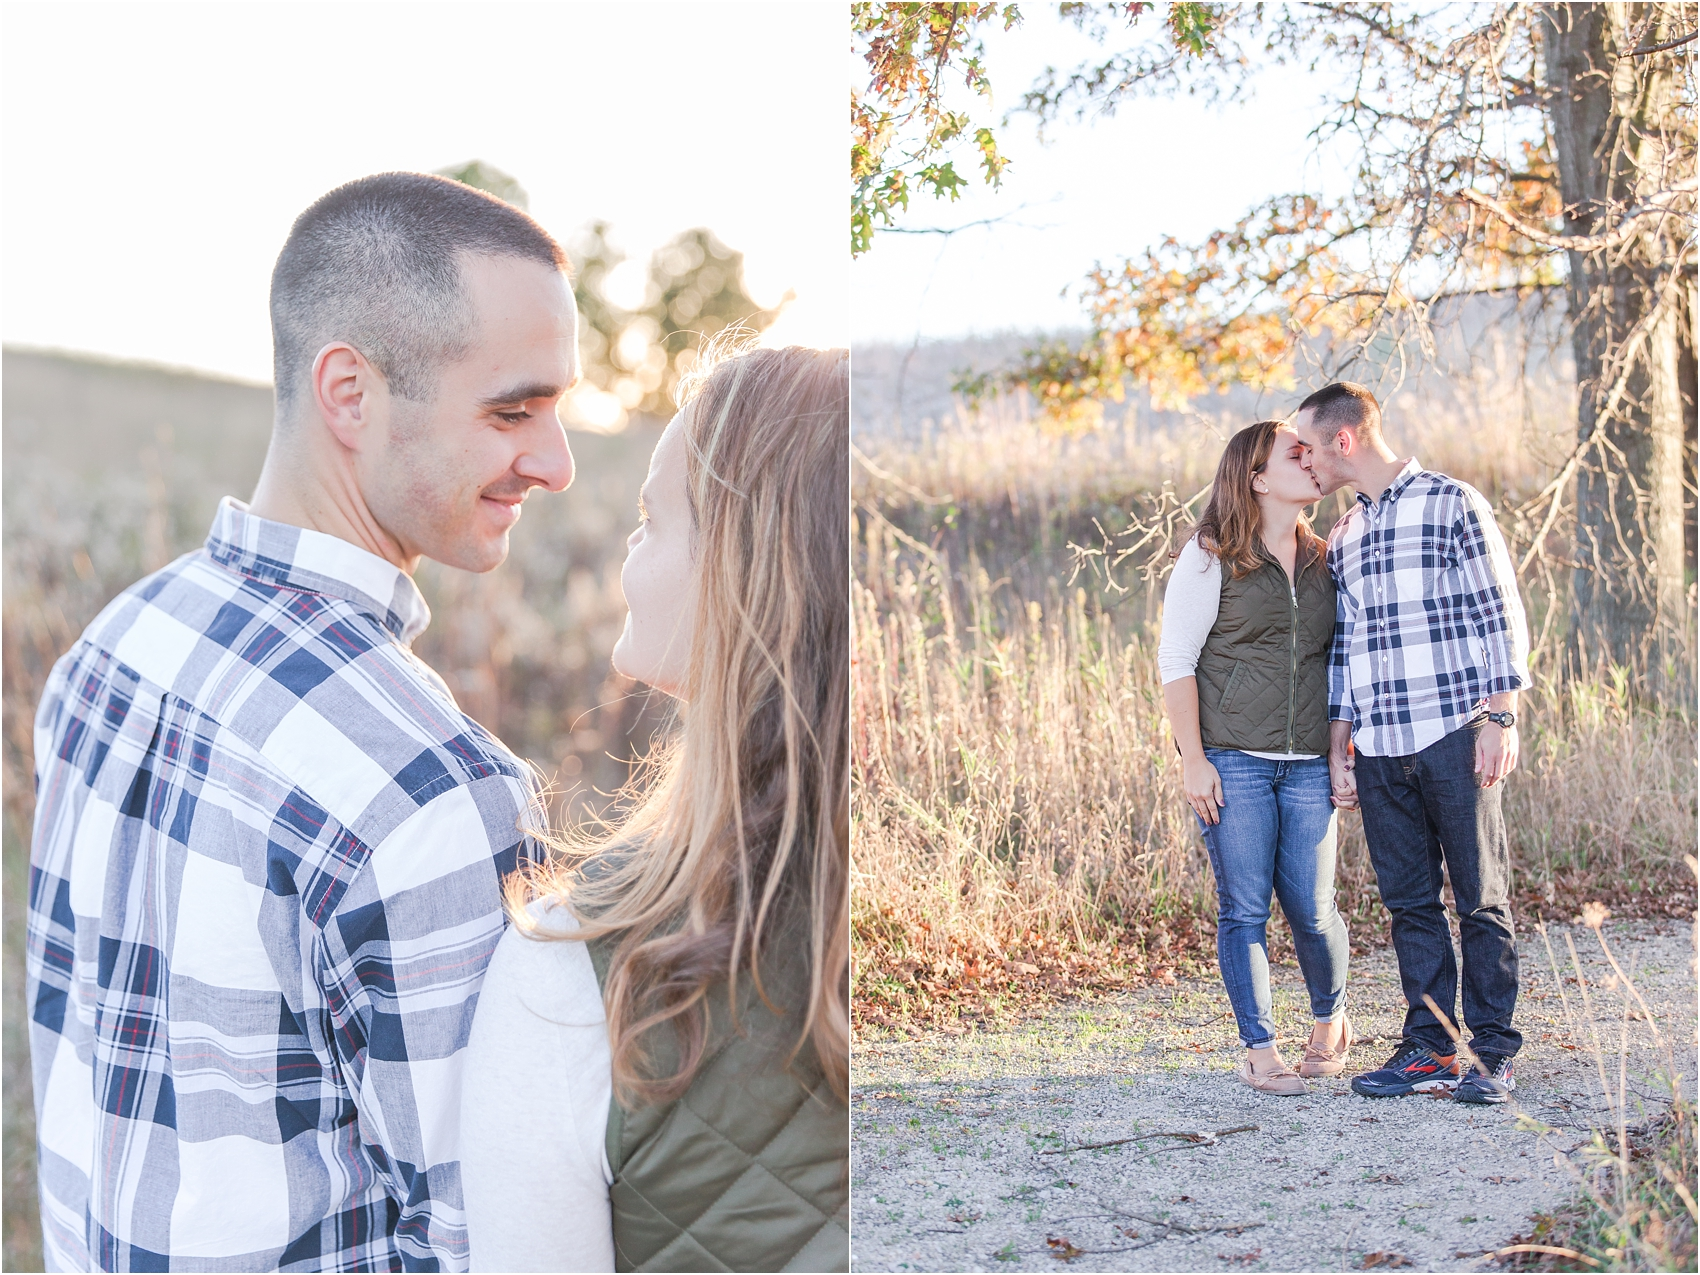 romantic-fall-engagement-photos-at-indian-springs-metropark-in-clarkston-mi-by-courtney-carolyn-photography_0010.jpg